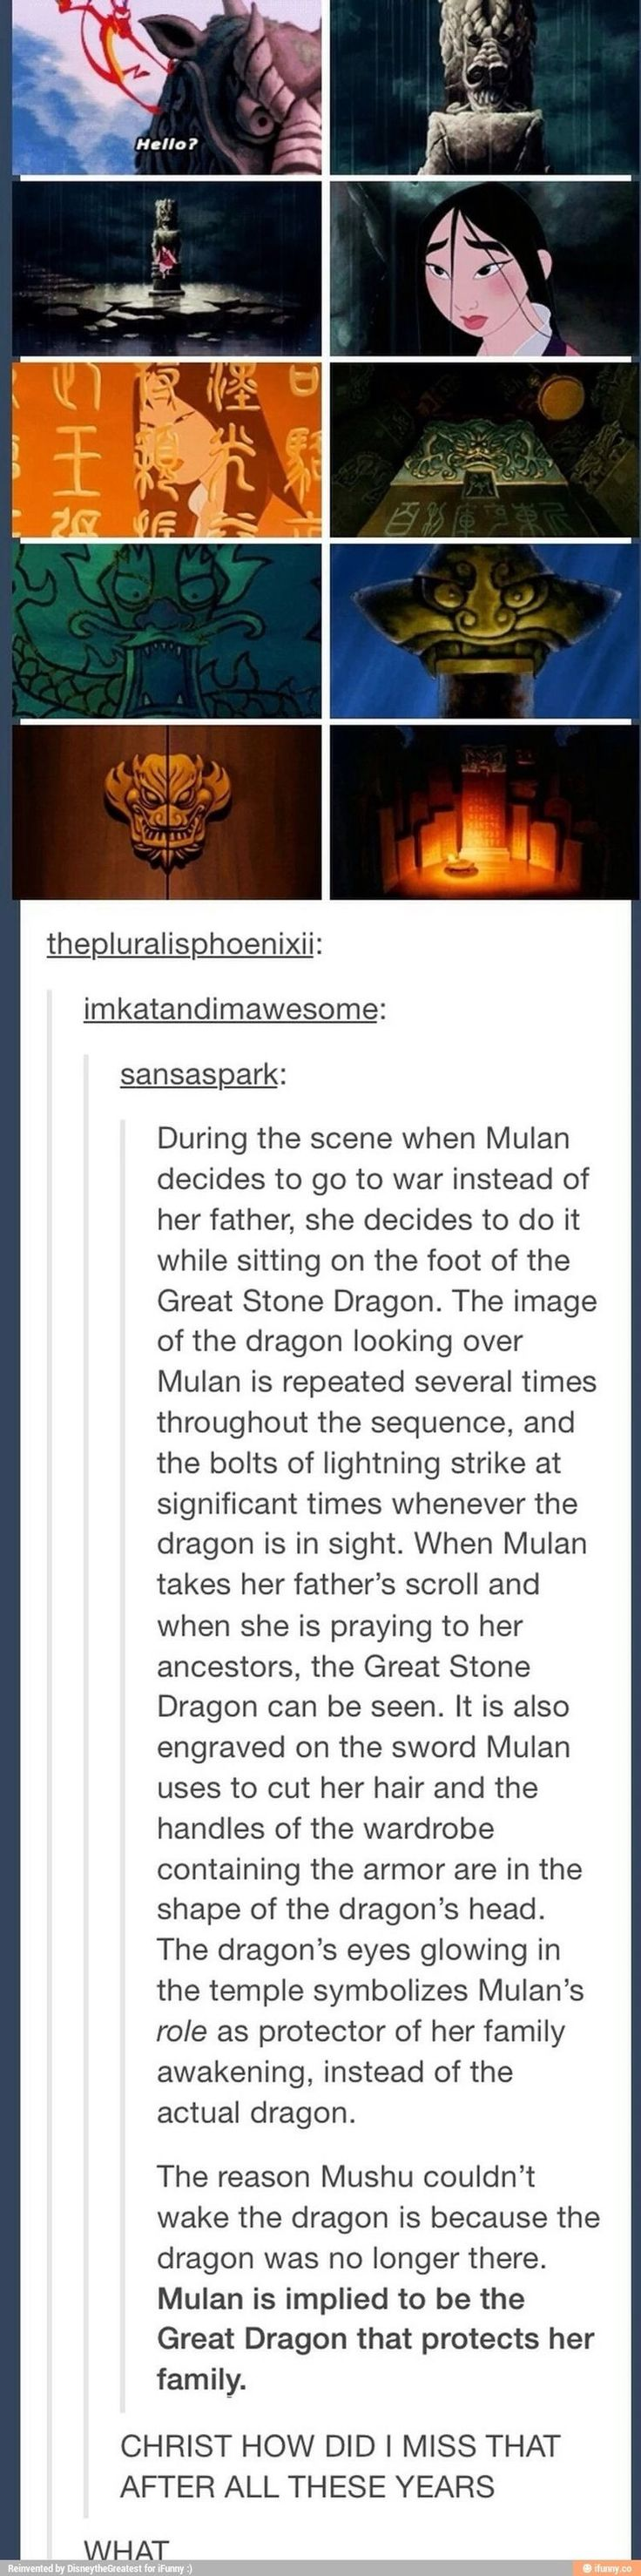 Mulan and the Great Stone Dragon